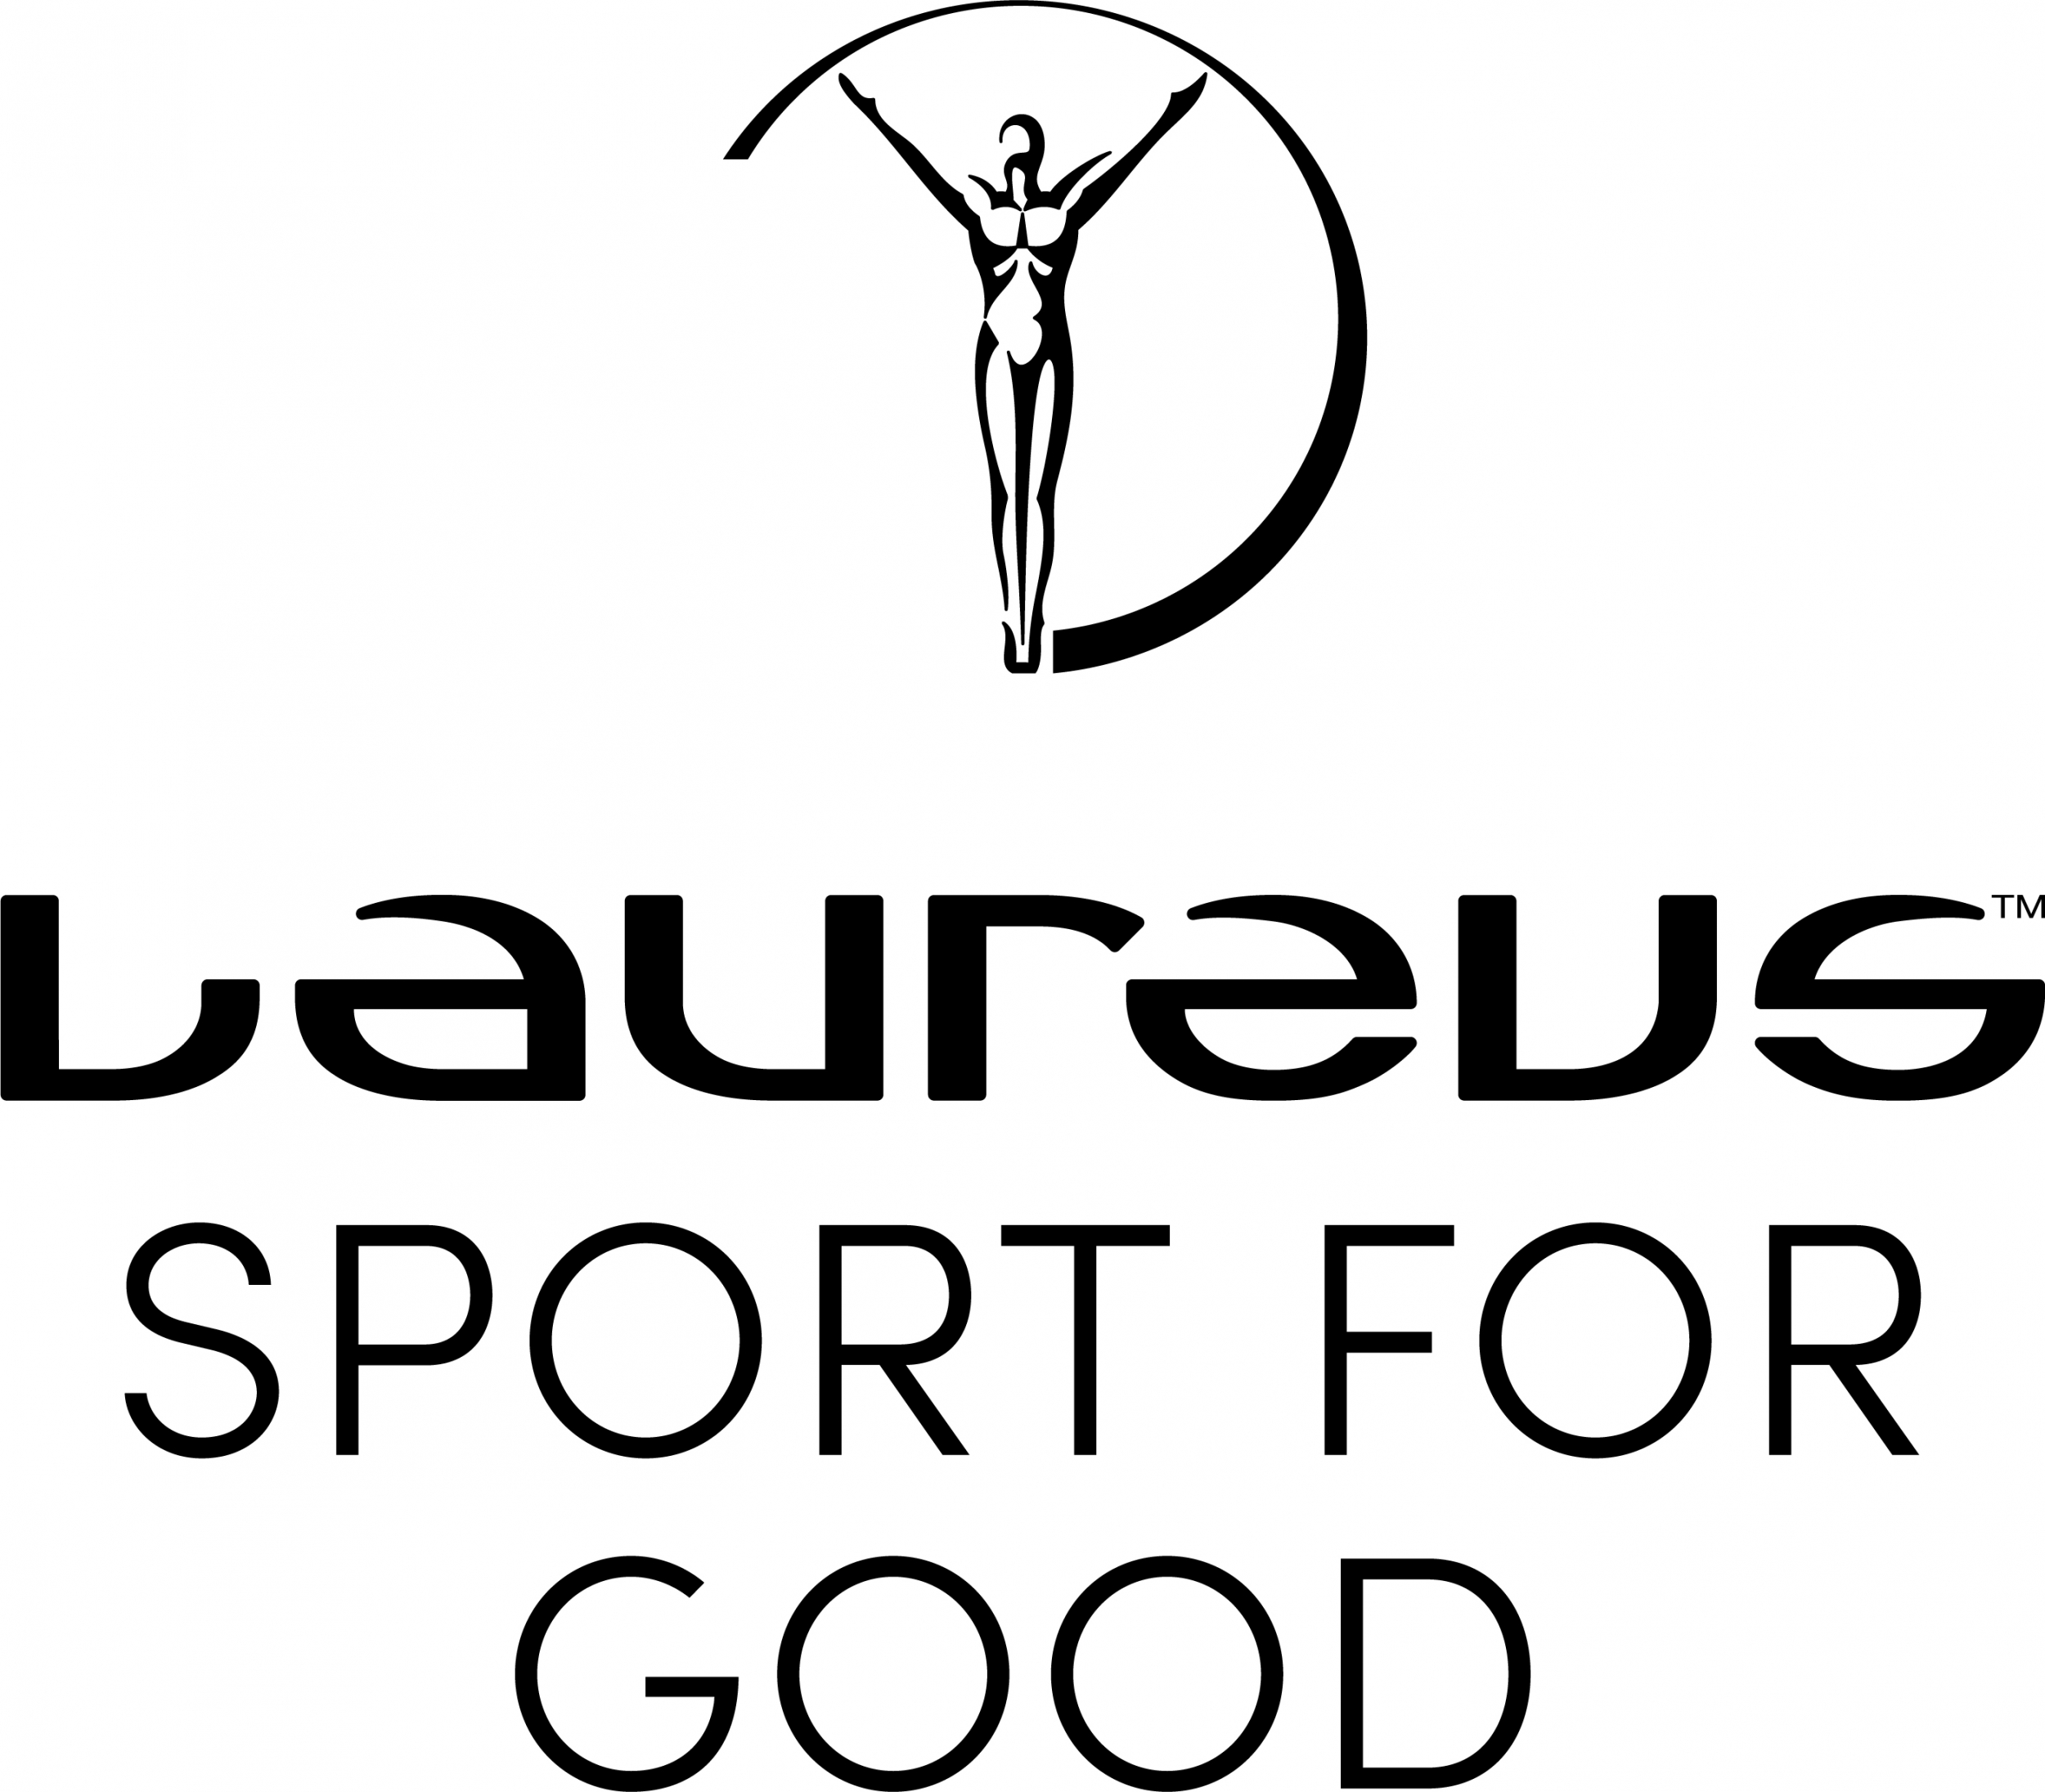 Lau­reus Sport for Good Foun­da­ti­on